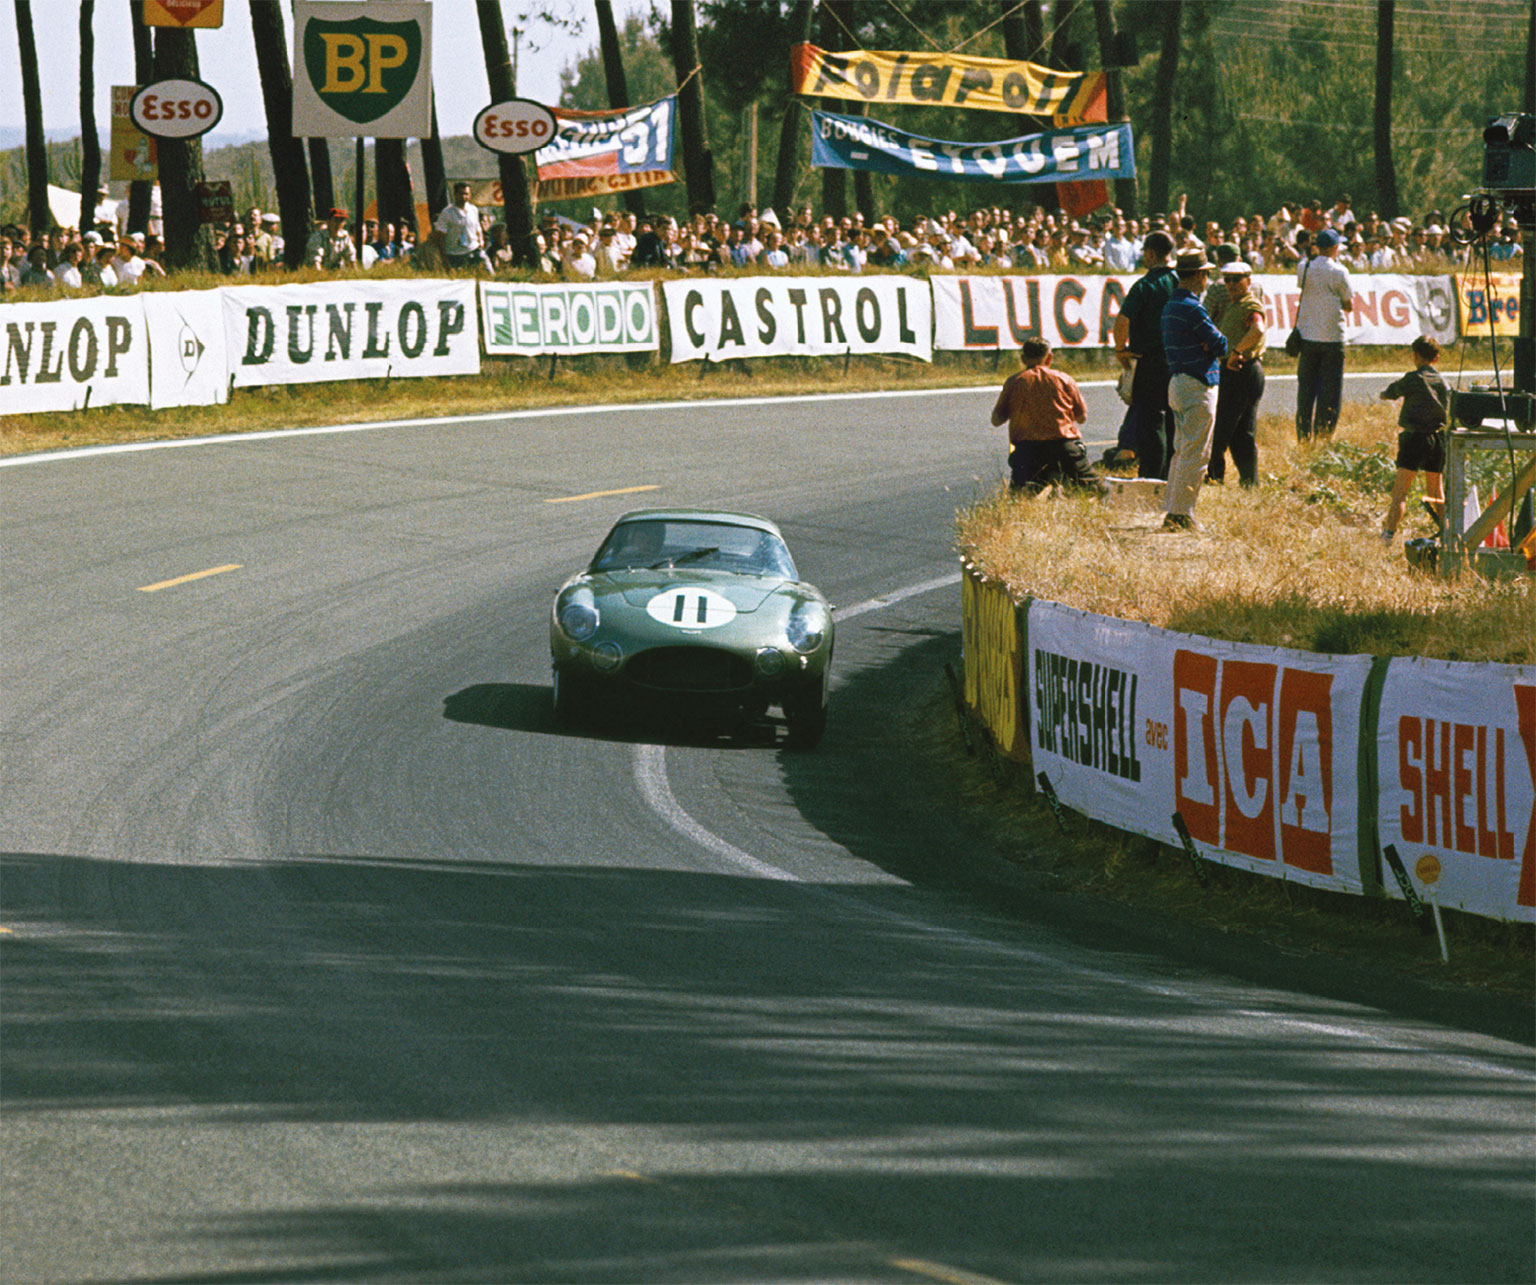 Le Mans '62 wasn't a happy hunting ground for the cars, with Hill/Ginther retiring